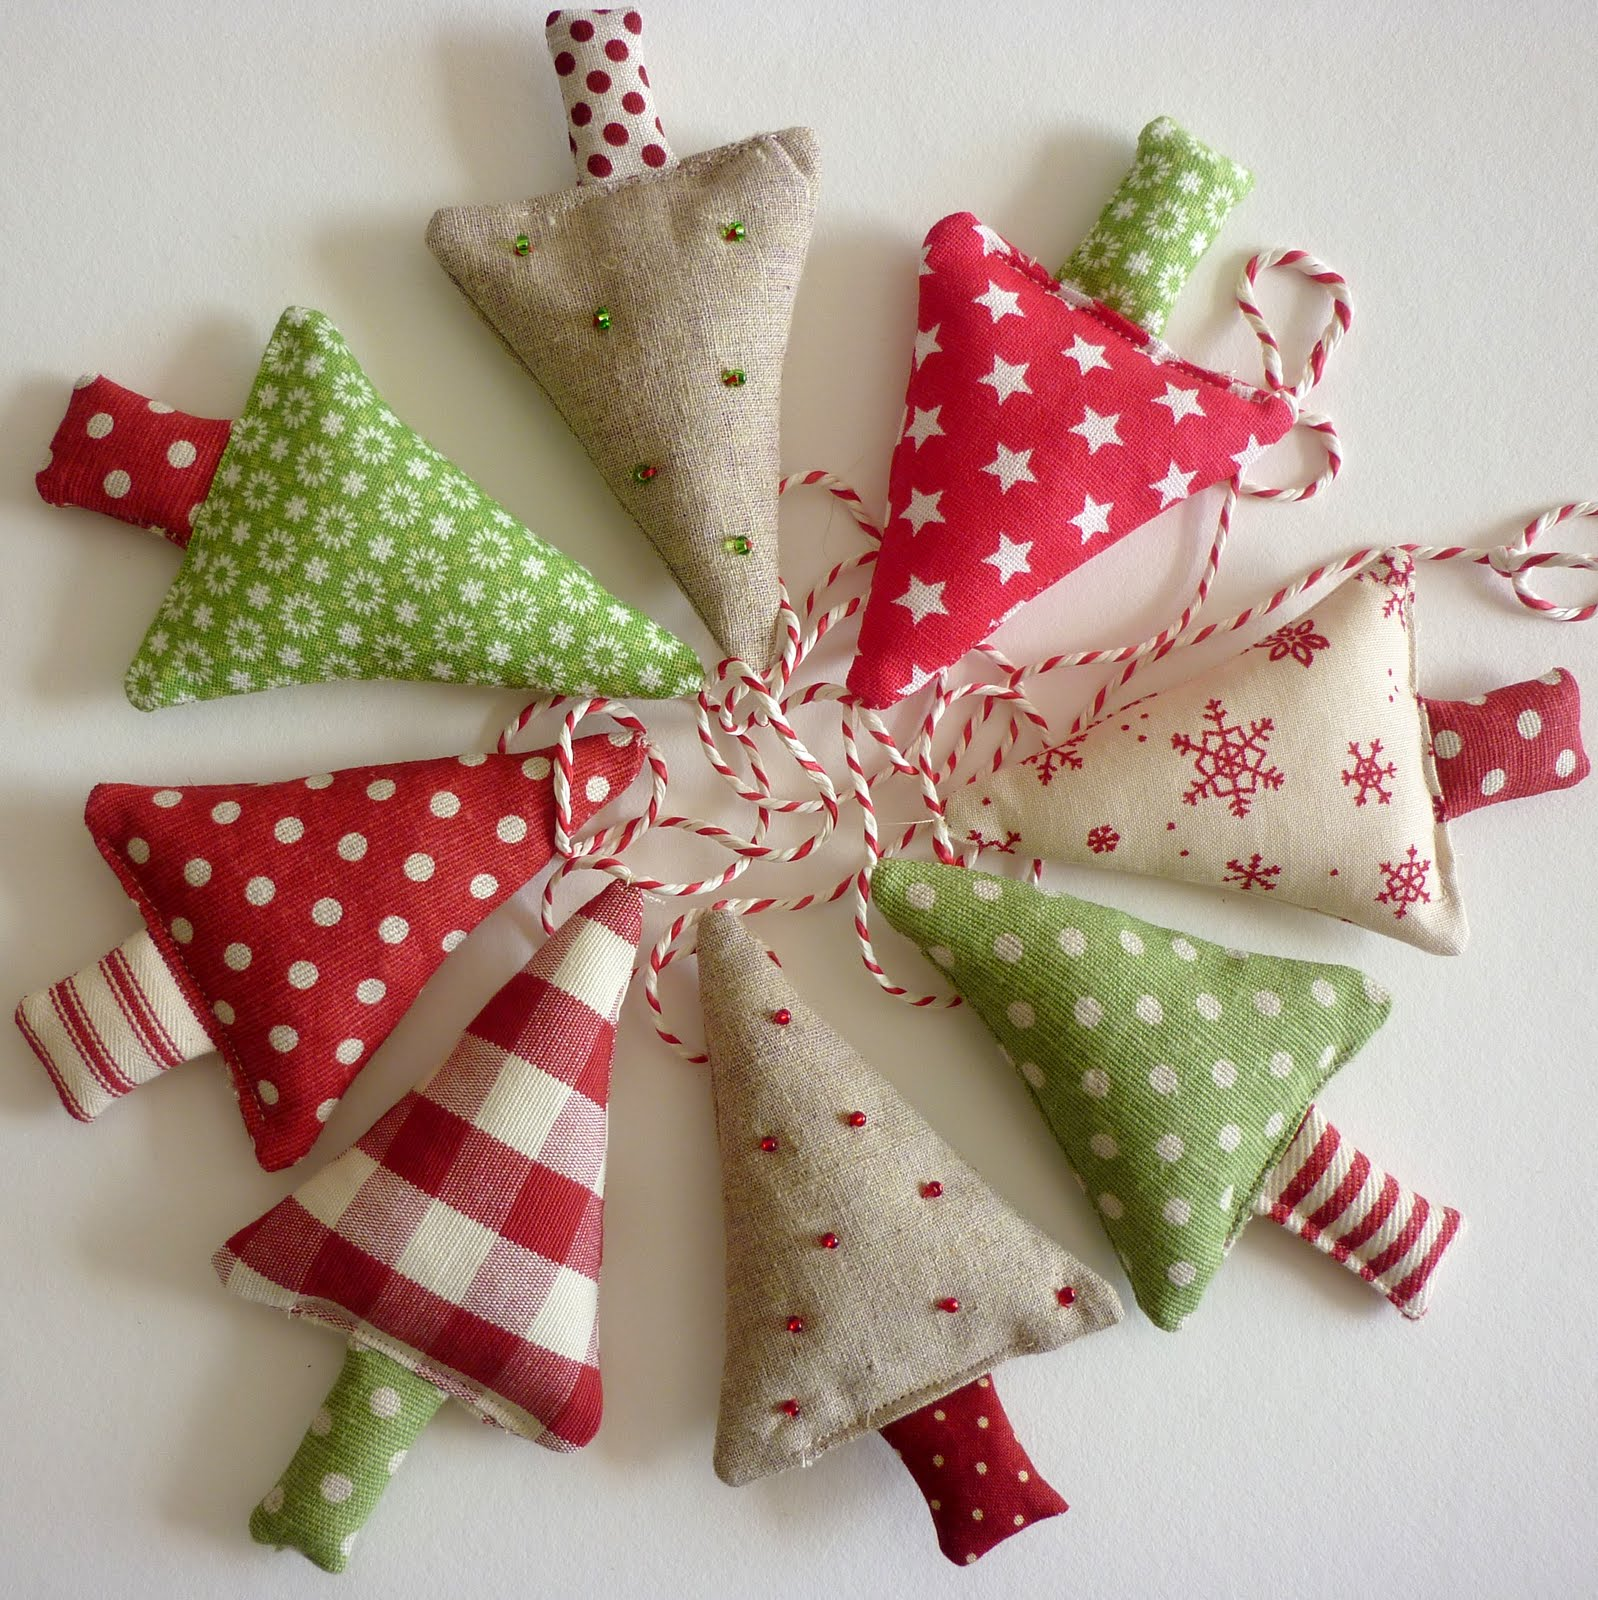 Handmade Christmas Decorations To Make: Sixty One A: Kirstie And Kirsty Sitting In A Tree